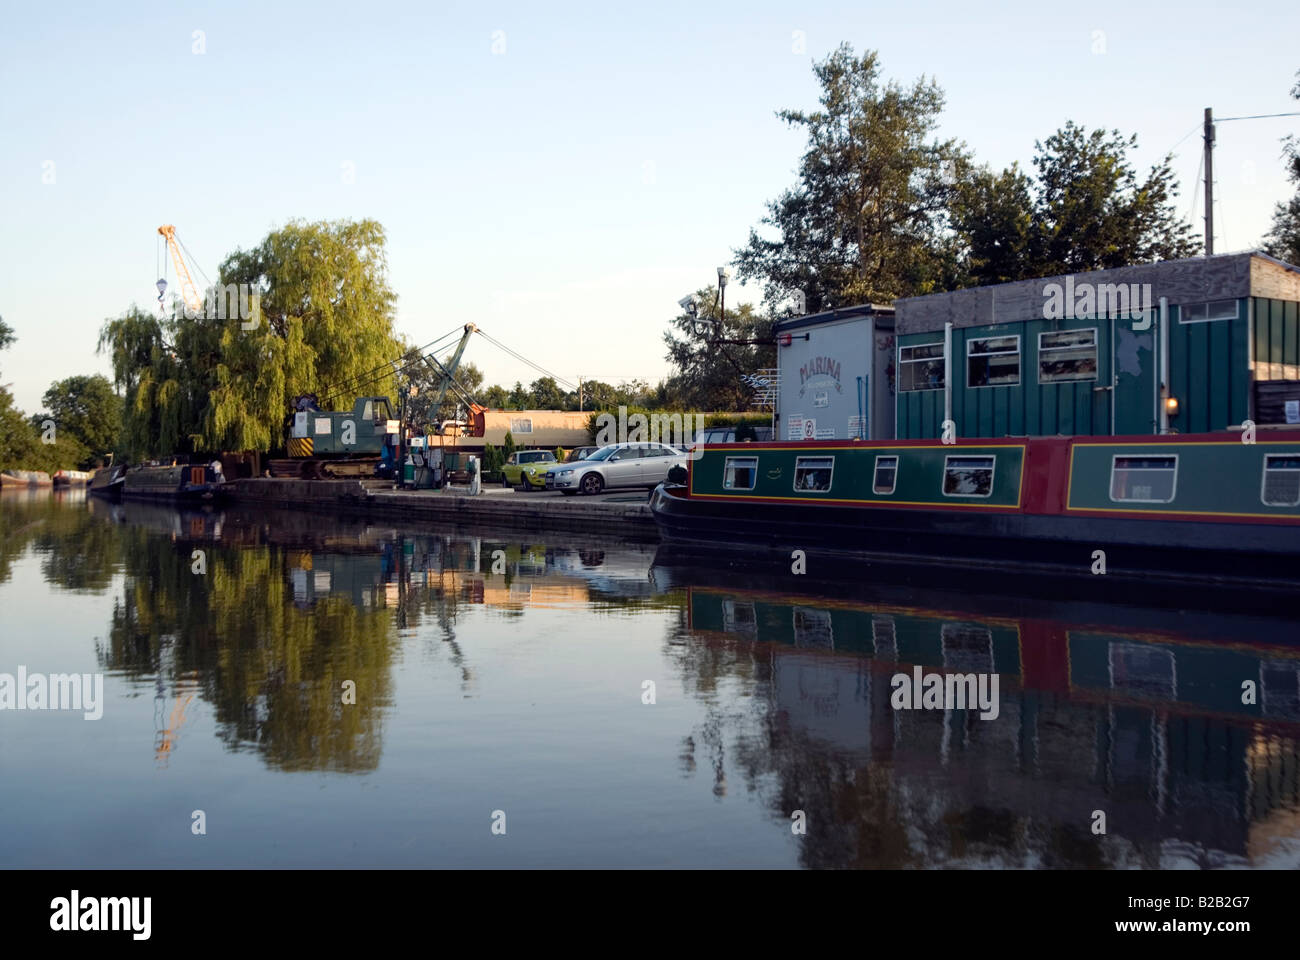 Crane accident on 23 July 2008 at Willowbridge Marina Stoke Road Bletchley Milton Keynes MK2 3JZ on the Grand Union - Stock Image